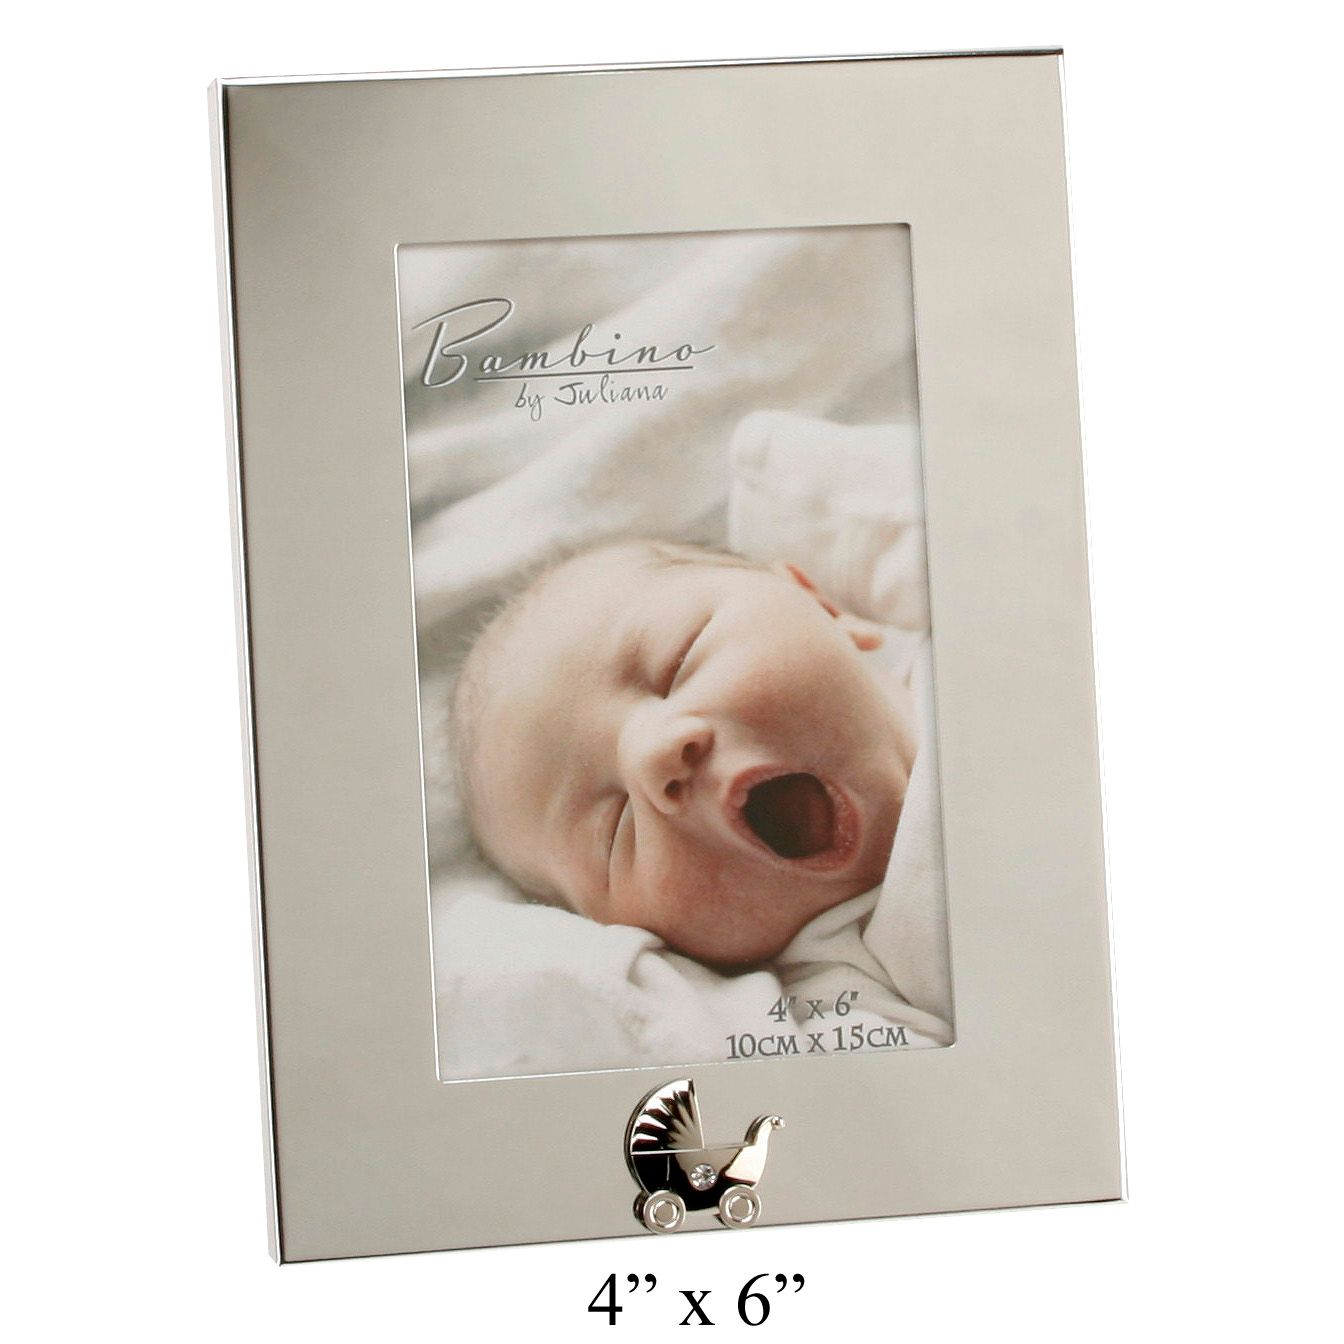 Bambino Bambino Silverplated frame